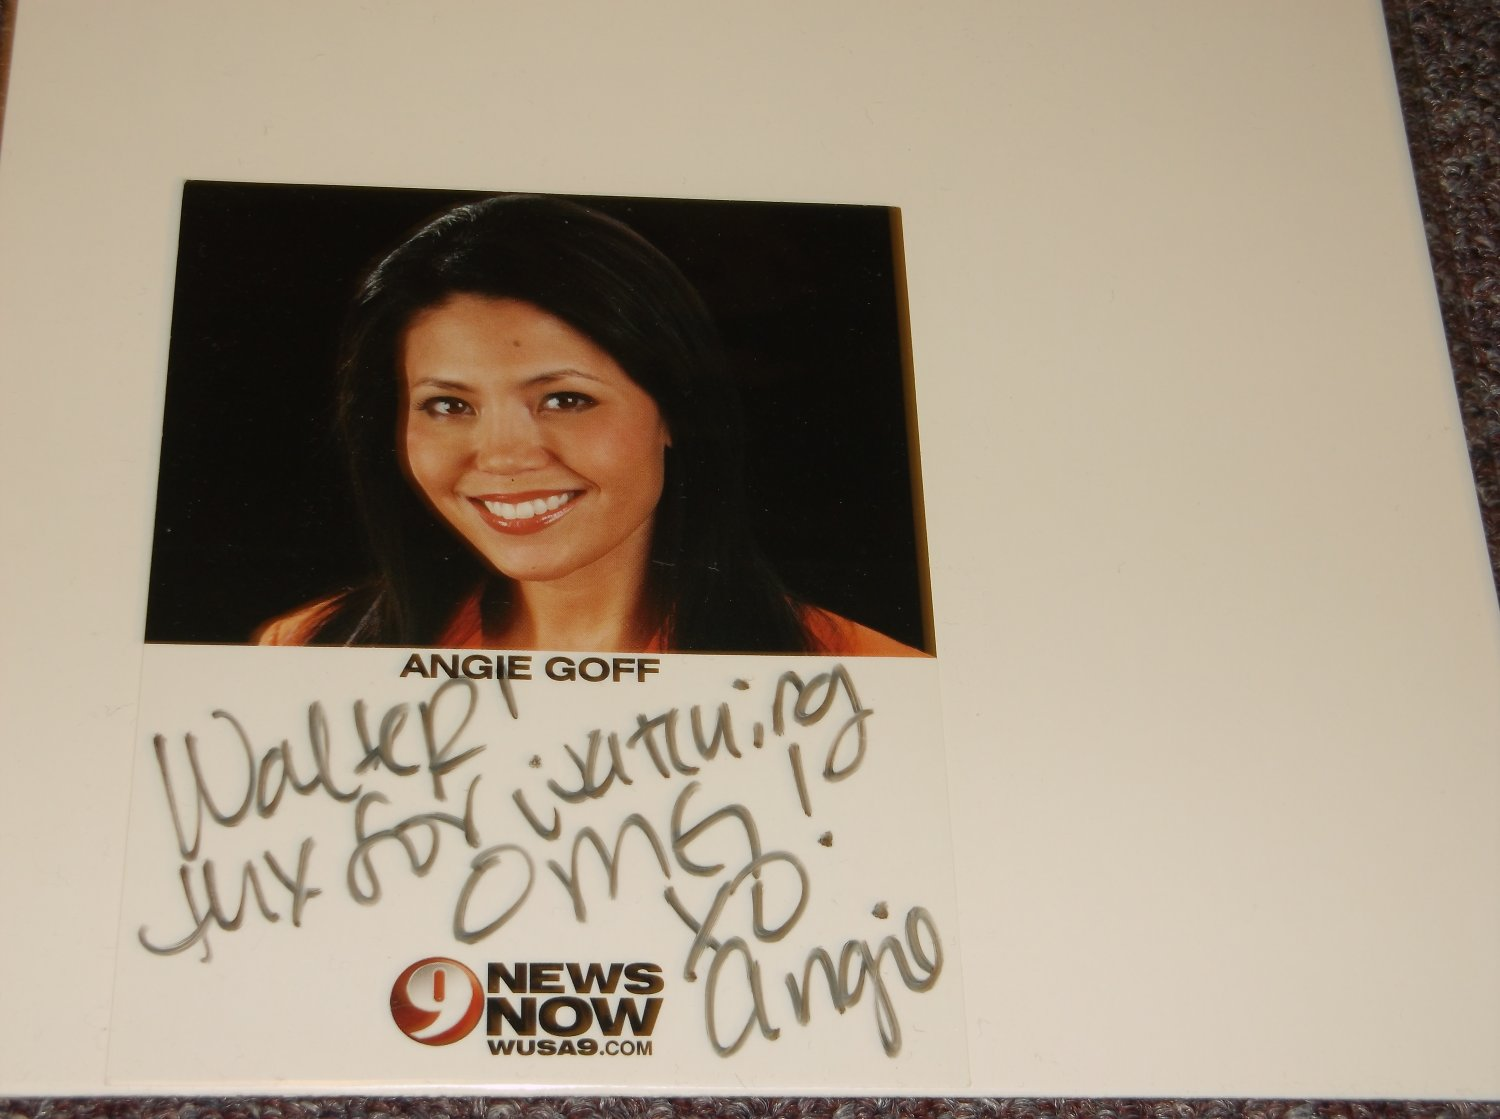 Angie Goff TV Personality signed inscribed 4x6 photo